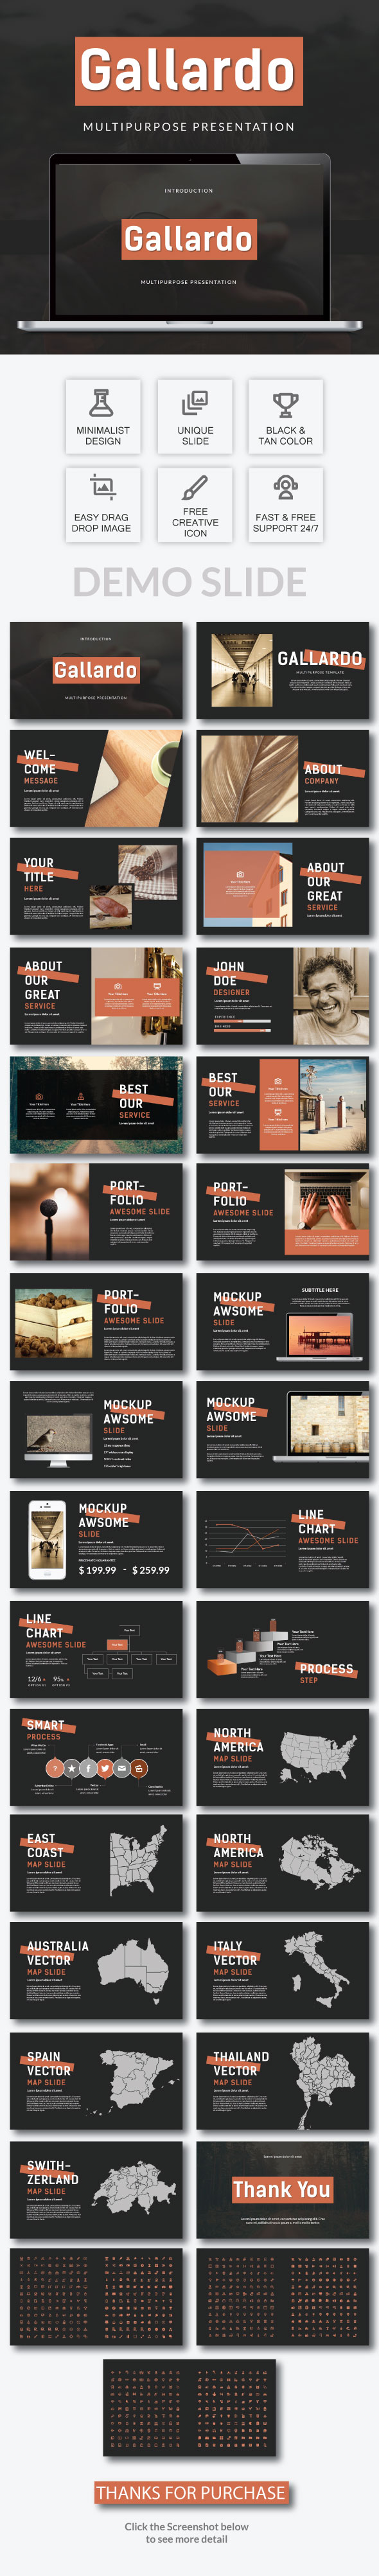 Gallardo - Multipurpose Keynote Template - Keynote Templates Presentation Templates